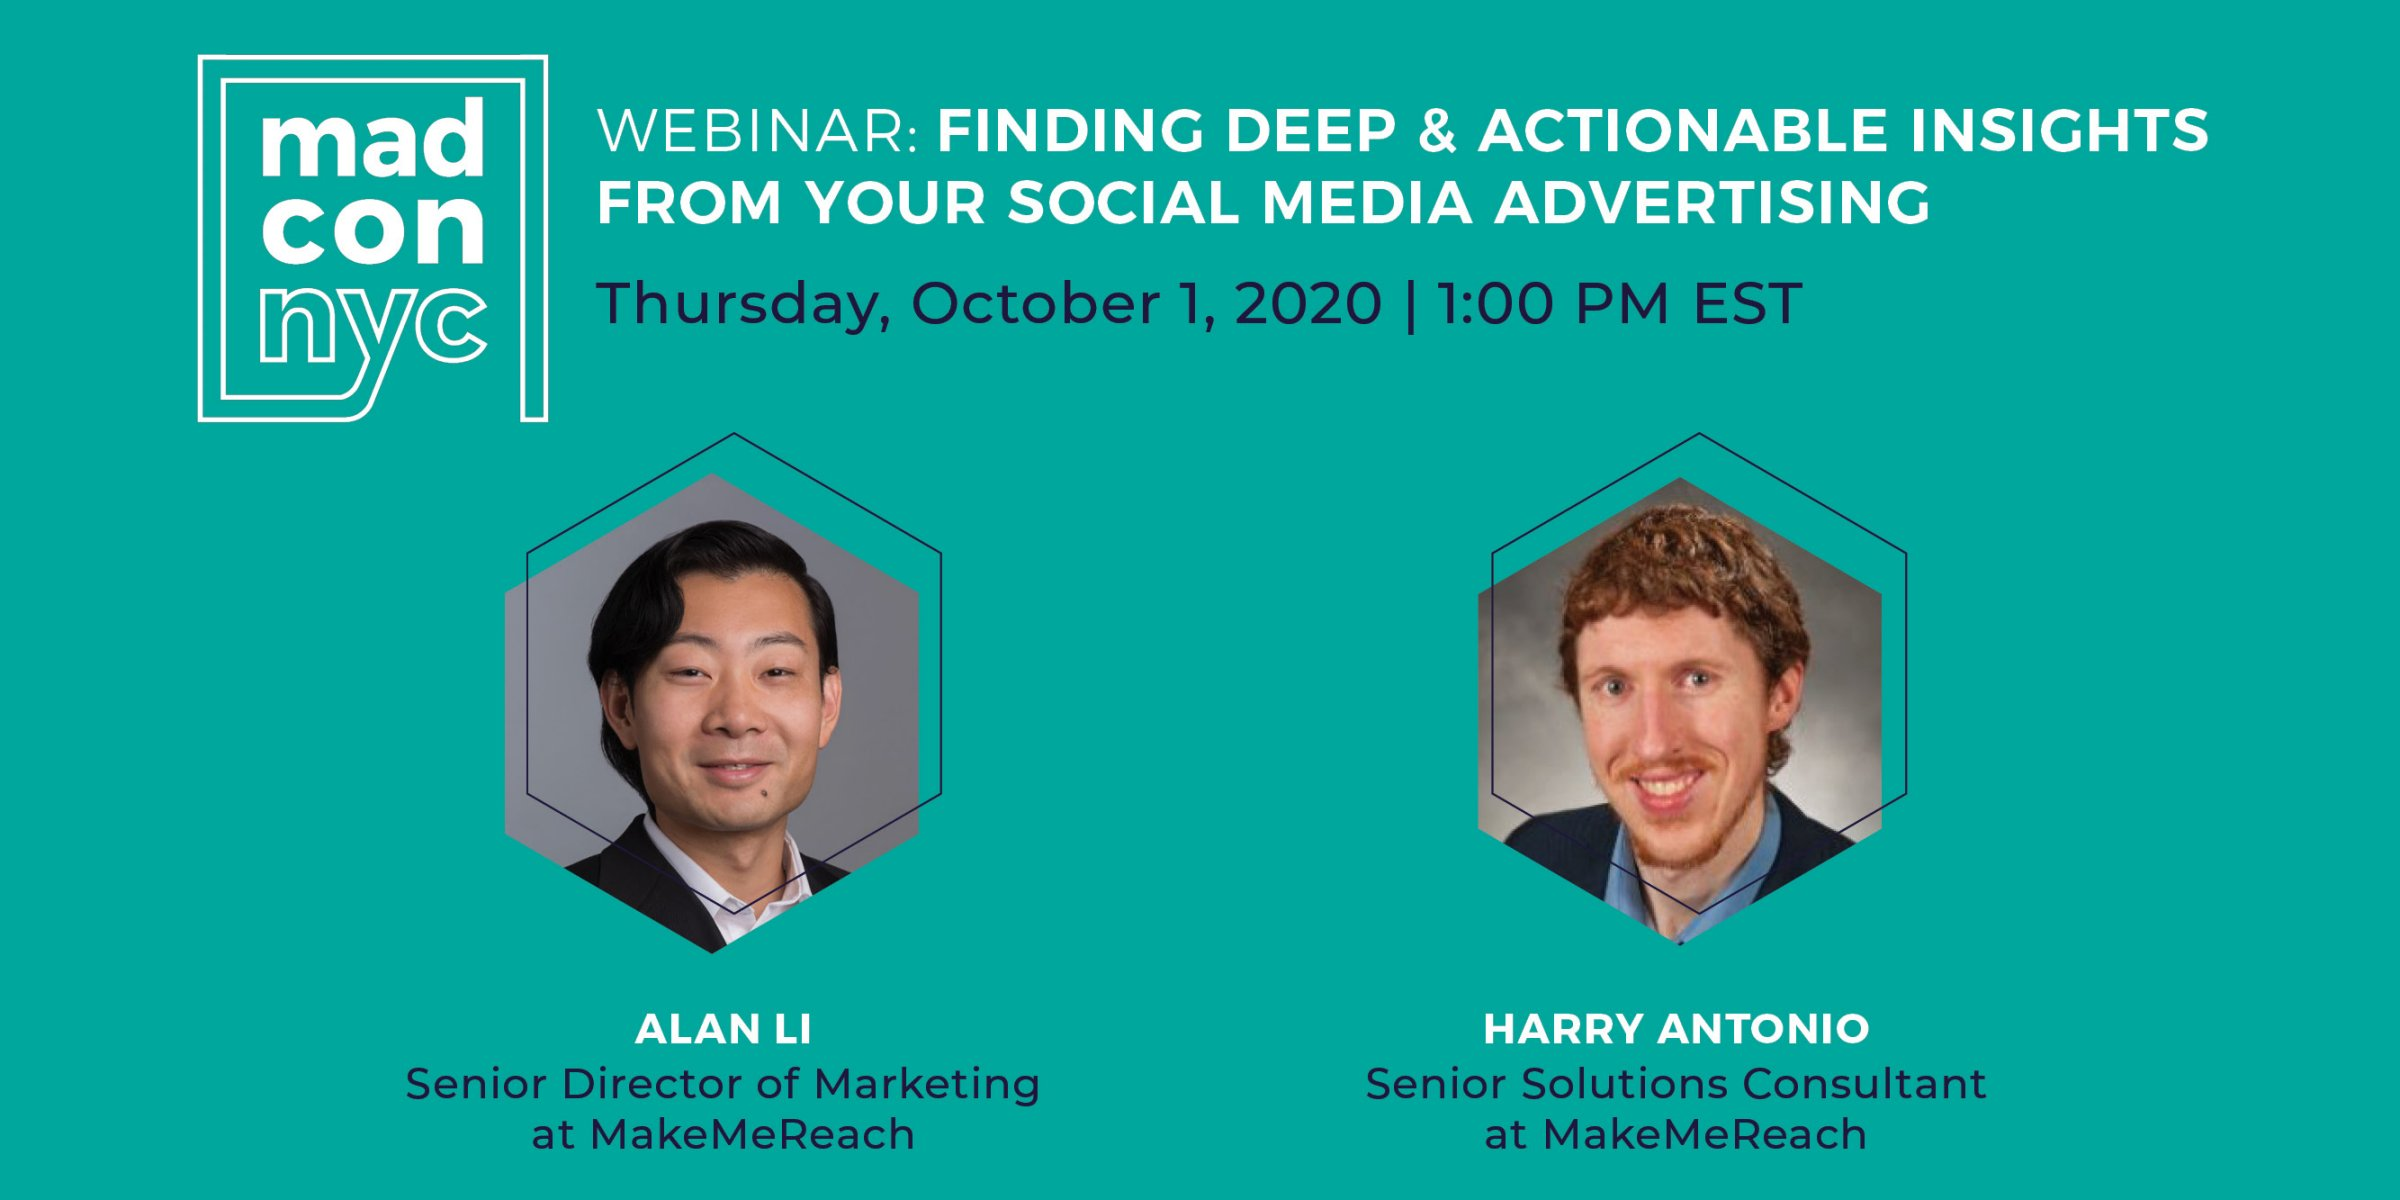 Finding Deep & Actionable Insights from your Social Media Advertising